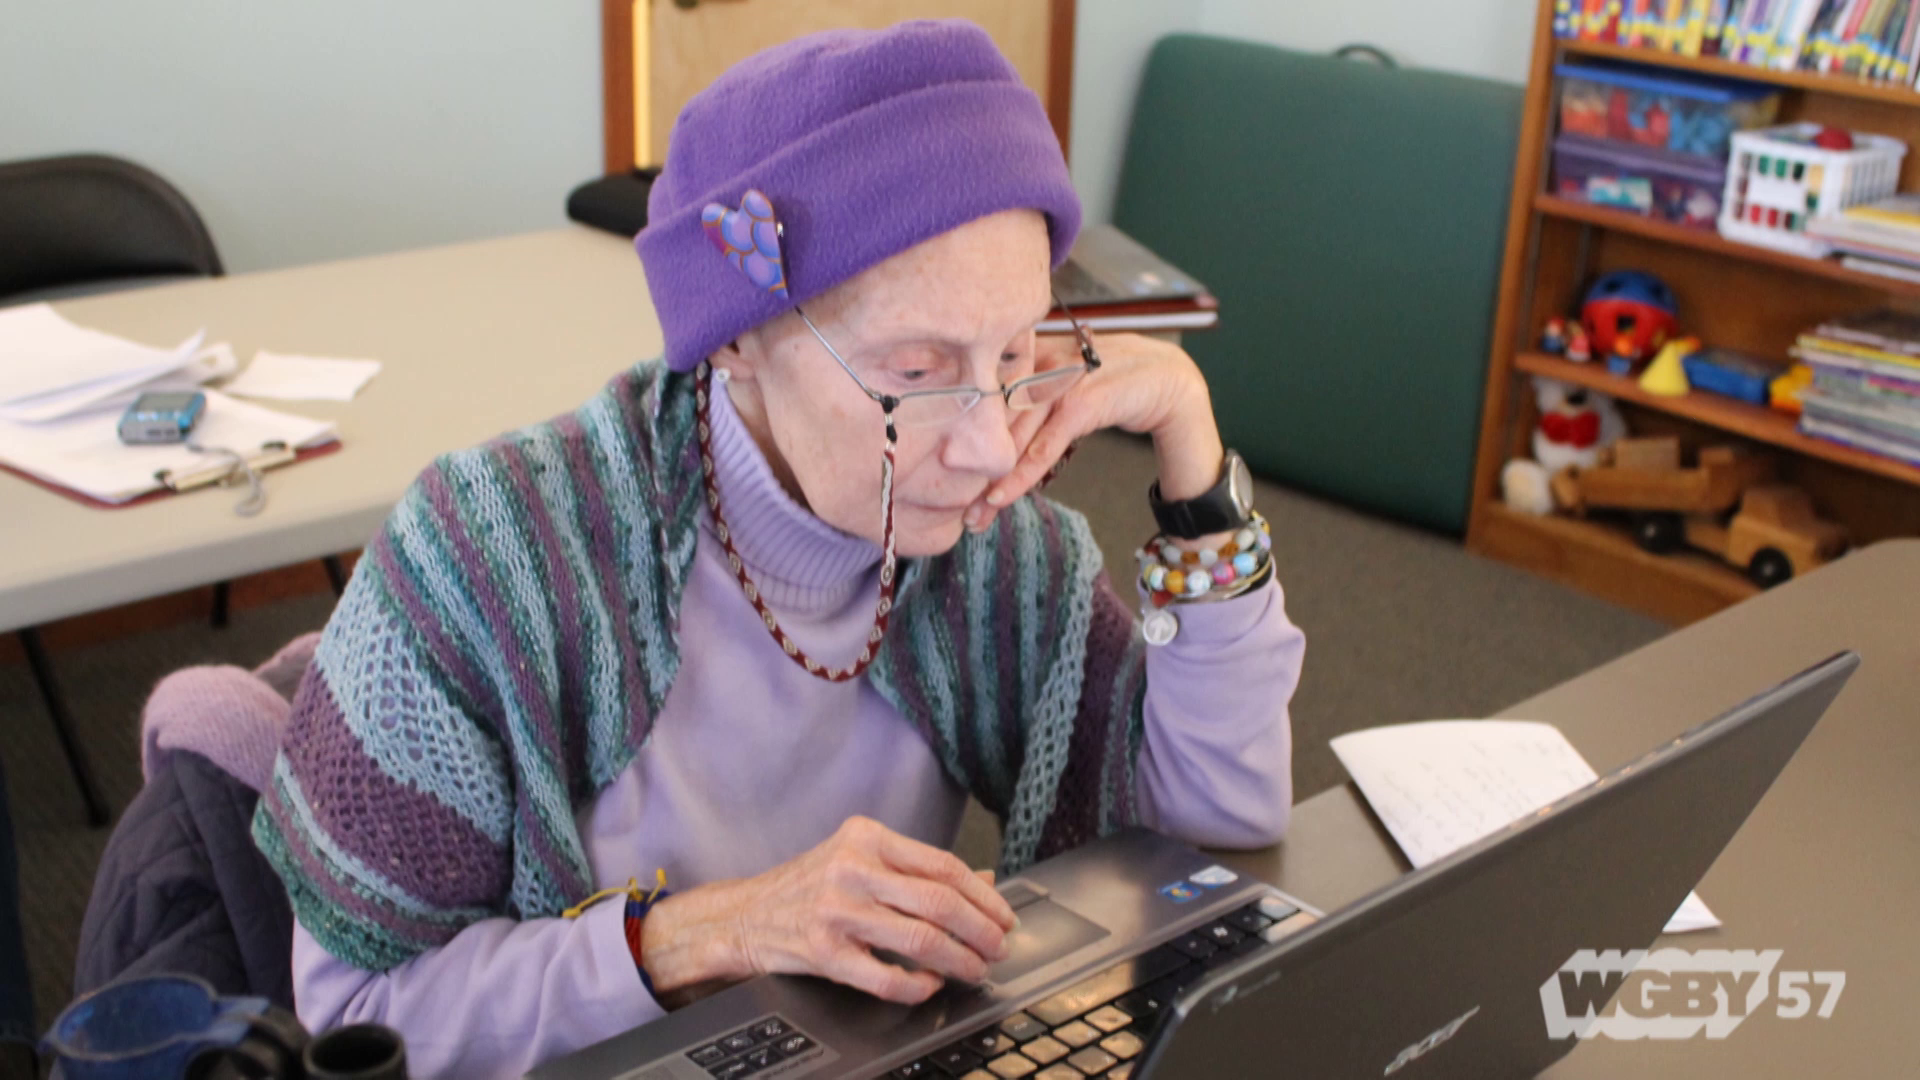 Celebrate the memory of Judy Allen, who passed away due to cancer. This digital story Allen herself created showcases her strength as she accepted her difficult diagnosis and her passion as lived her very best life.